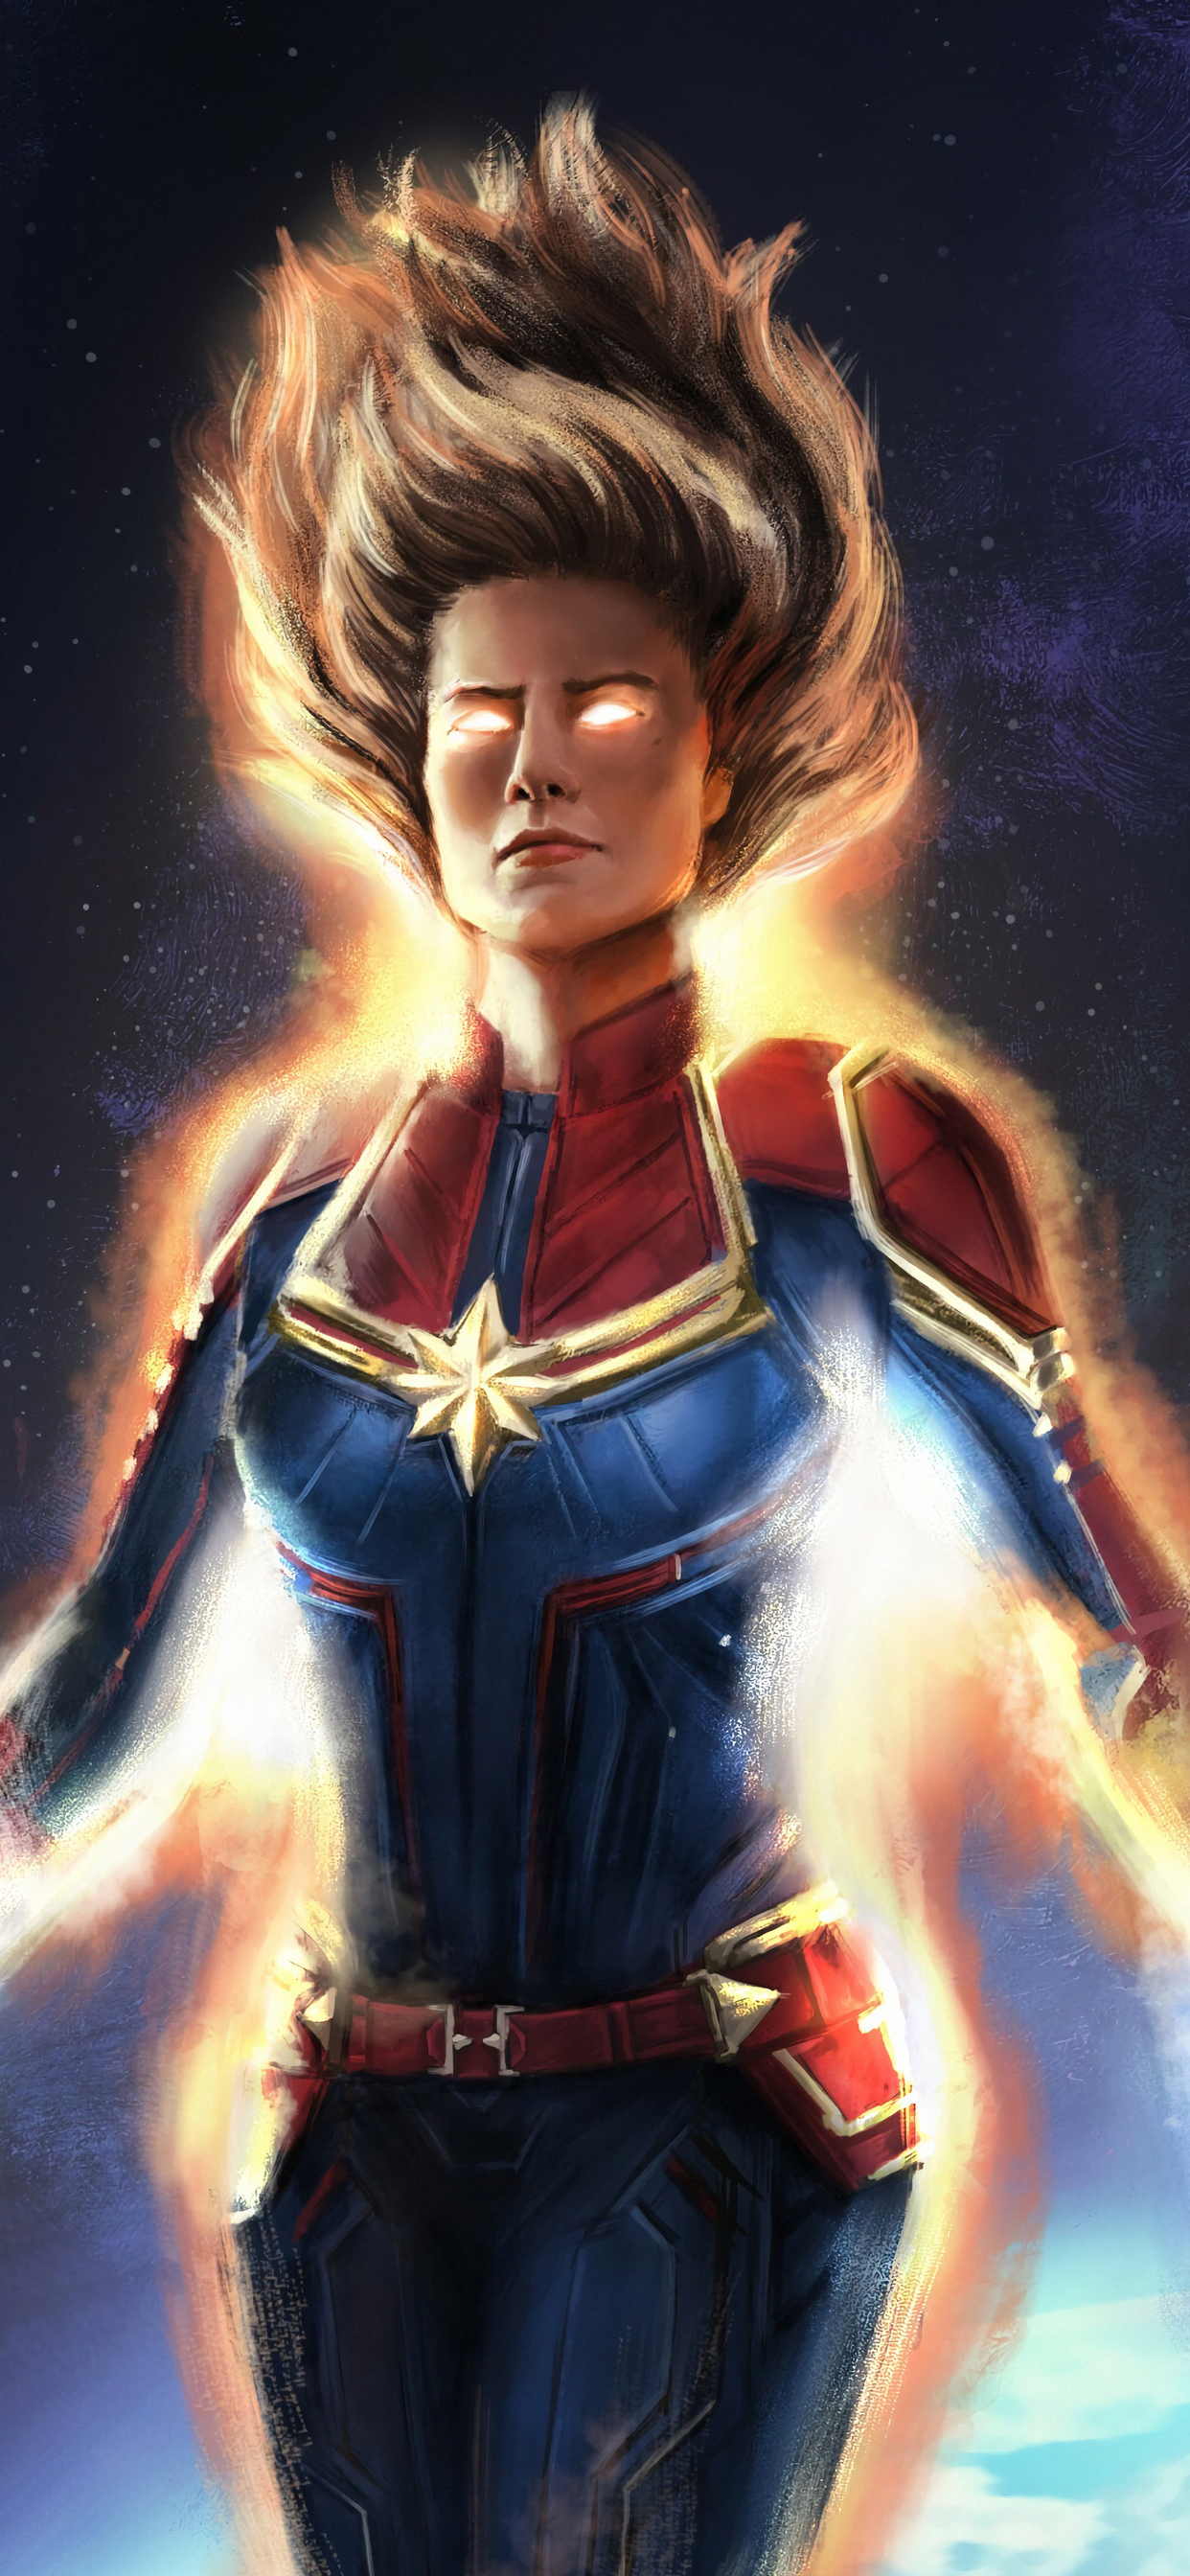 1242x2688 Captain Marvel Artsnew Iphone Xs Max Hd 4k Wallpapers Images Backgrounds Photos And Pictures